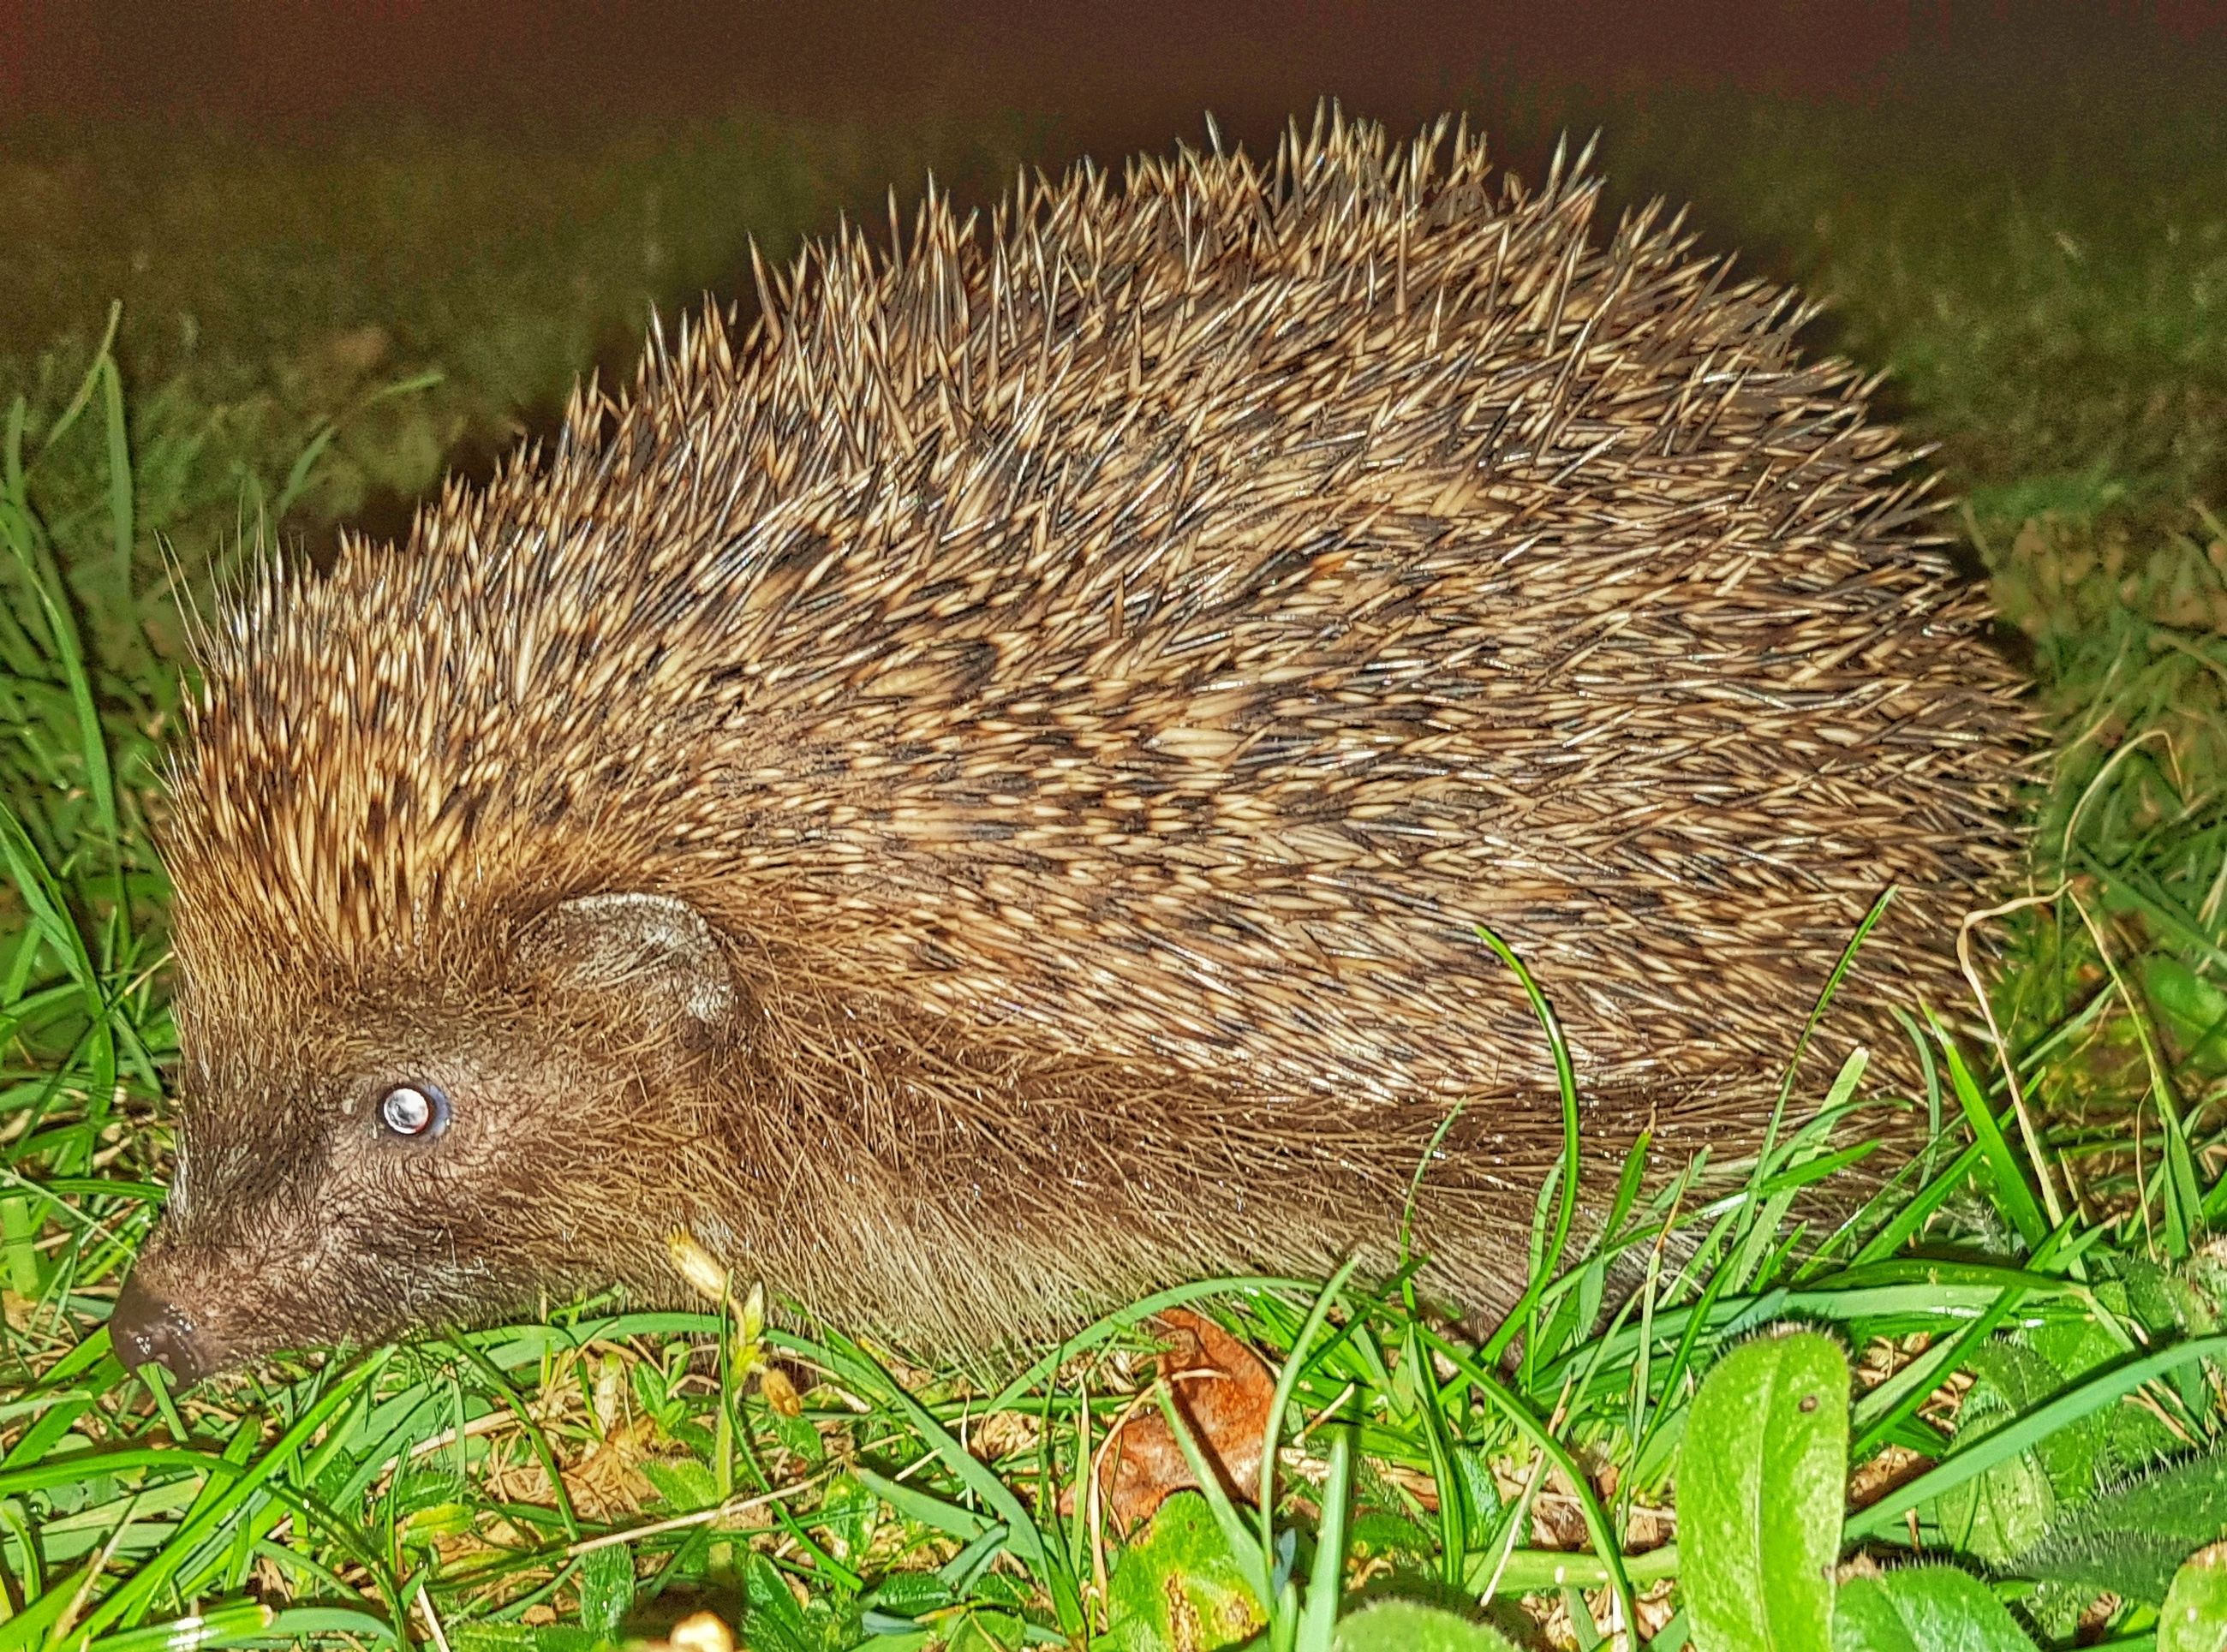 animal, animal wildlife, animal themes, one animal, animals in the wild, mammal, hedgehog, no people, field, vertebrate, plant, grass, nature, close-up, land, day, outdoors, green color, looking, focus on foreground